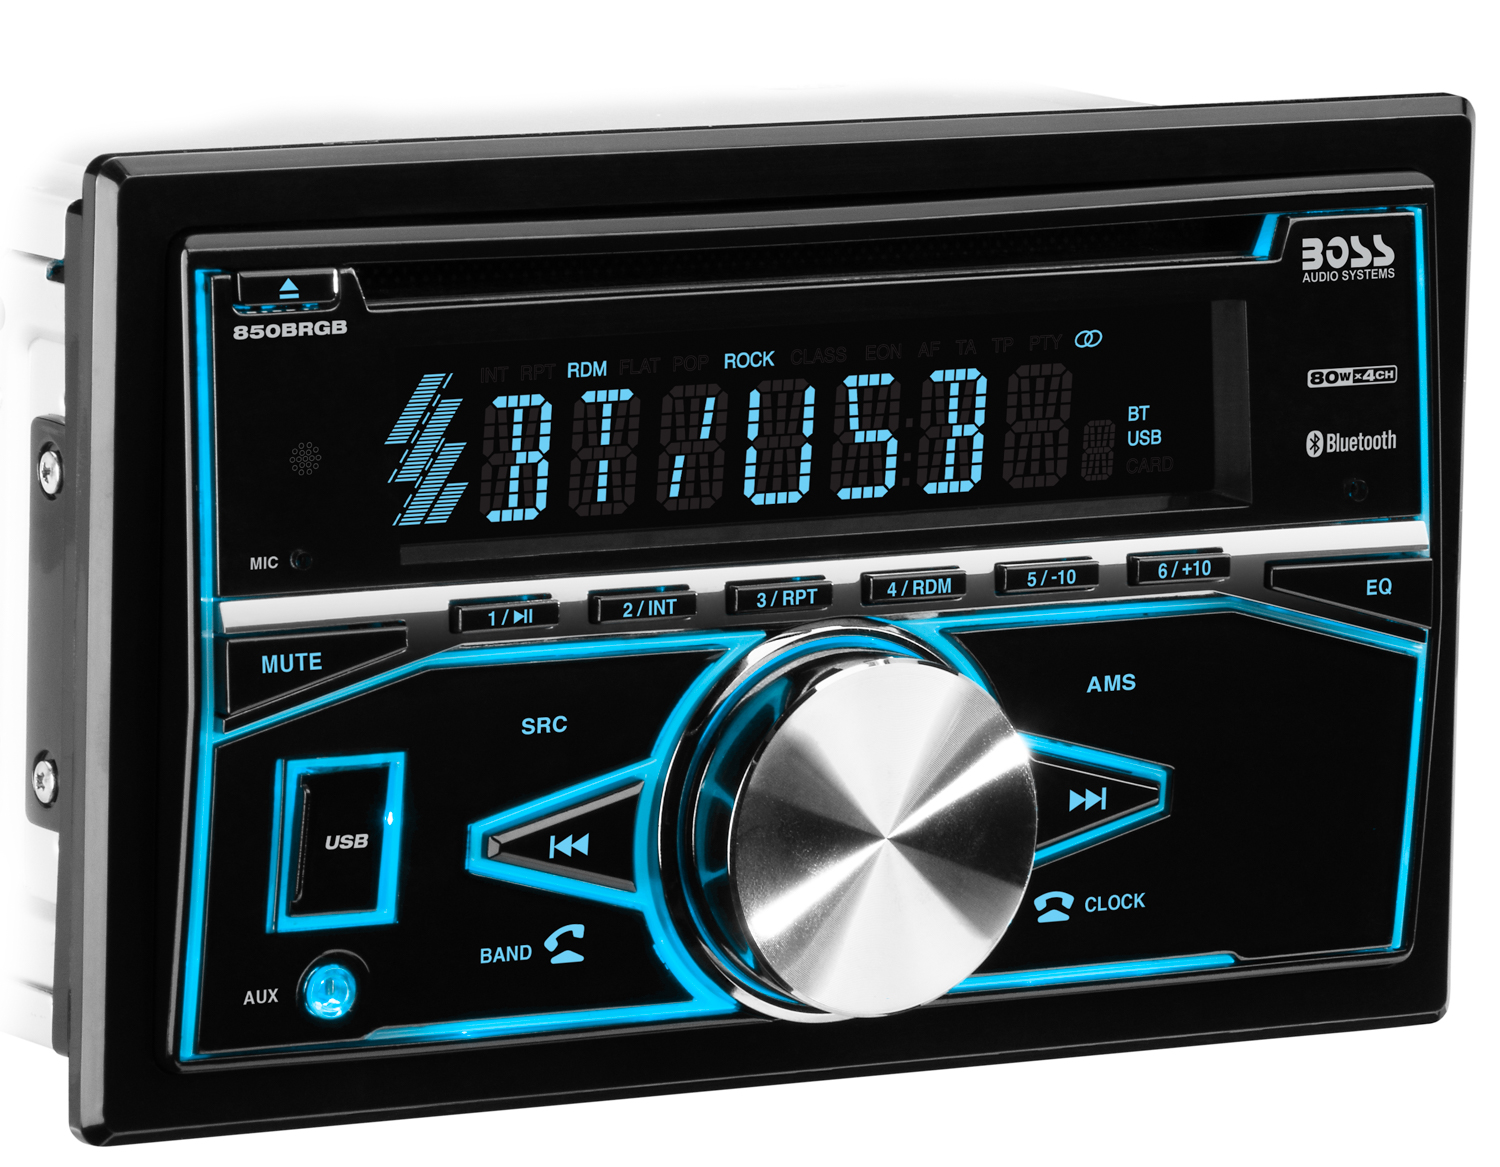 hight resolution of boss audio 850brgb double din cd mp3 player bluetooth ebay rh ebay com boss subwoofer wiring diagram boss stereo wiring diagram